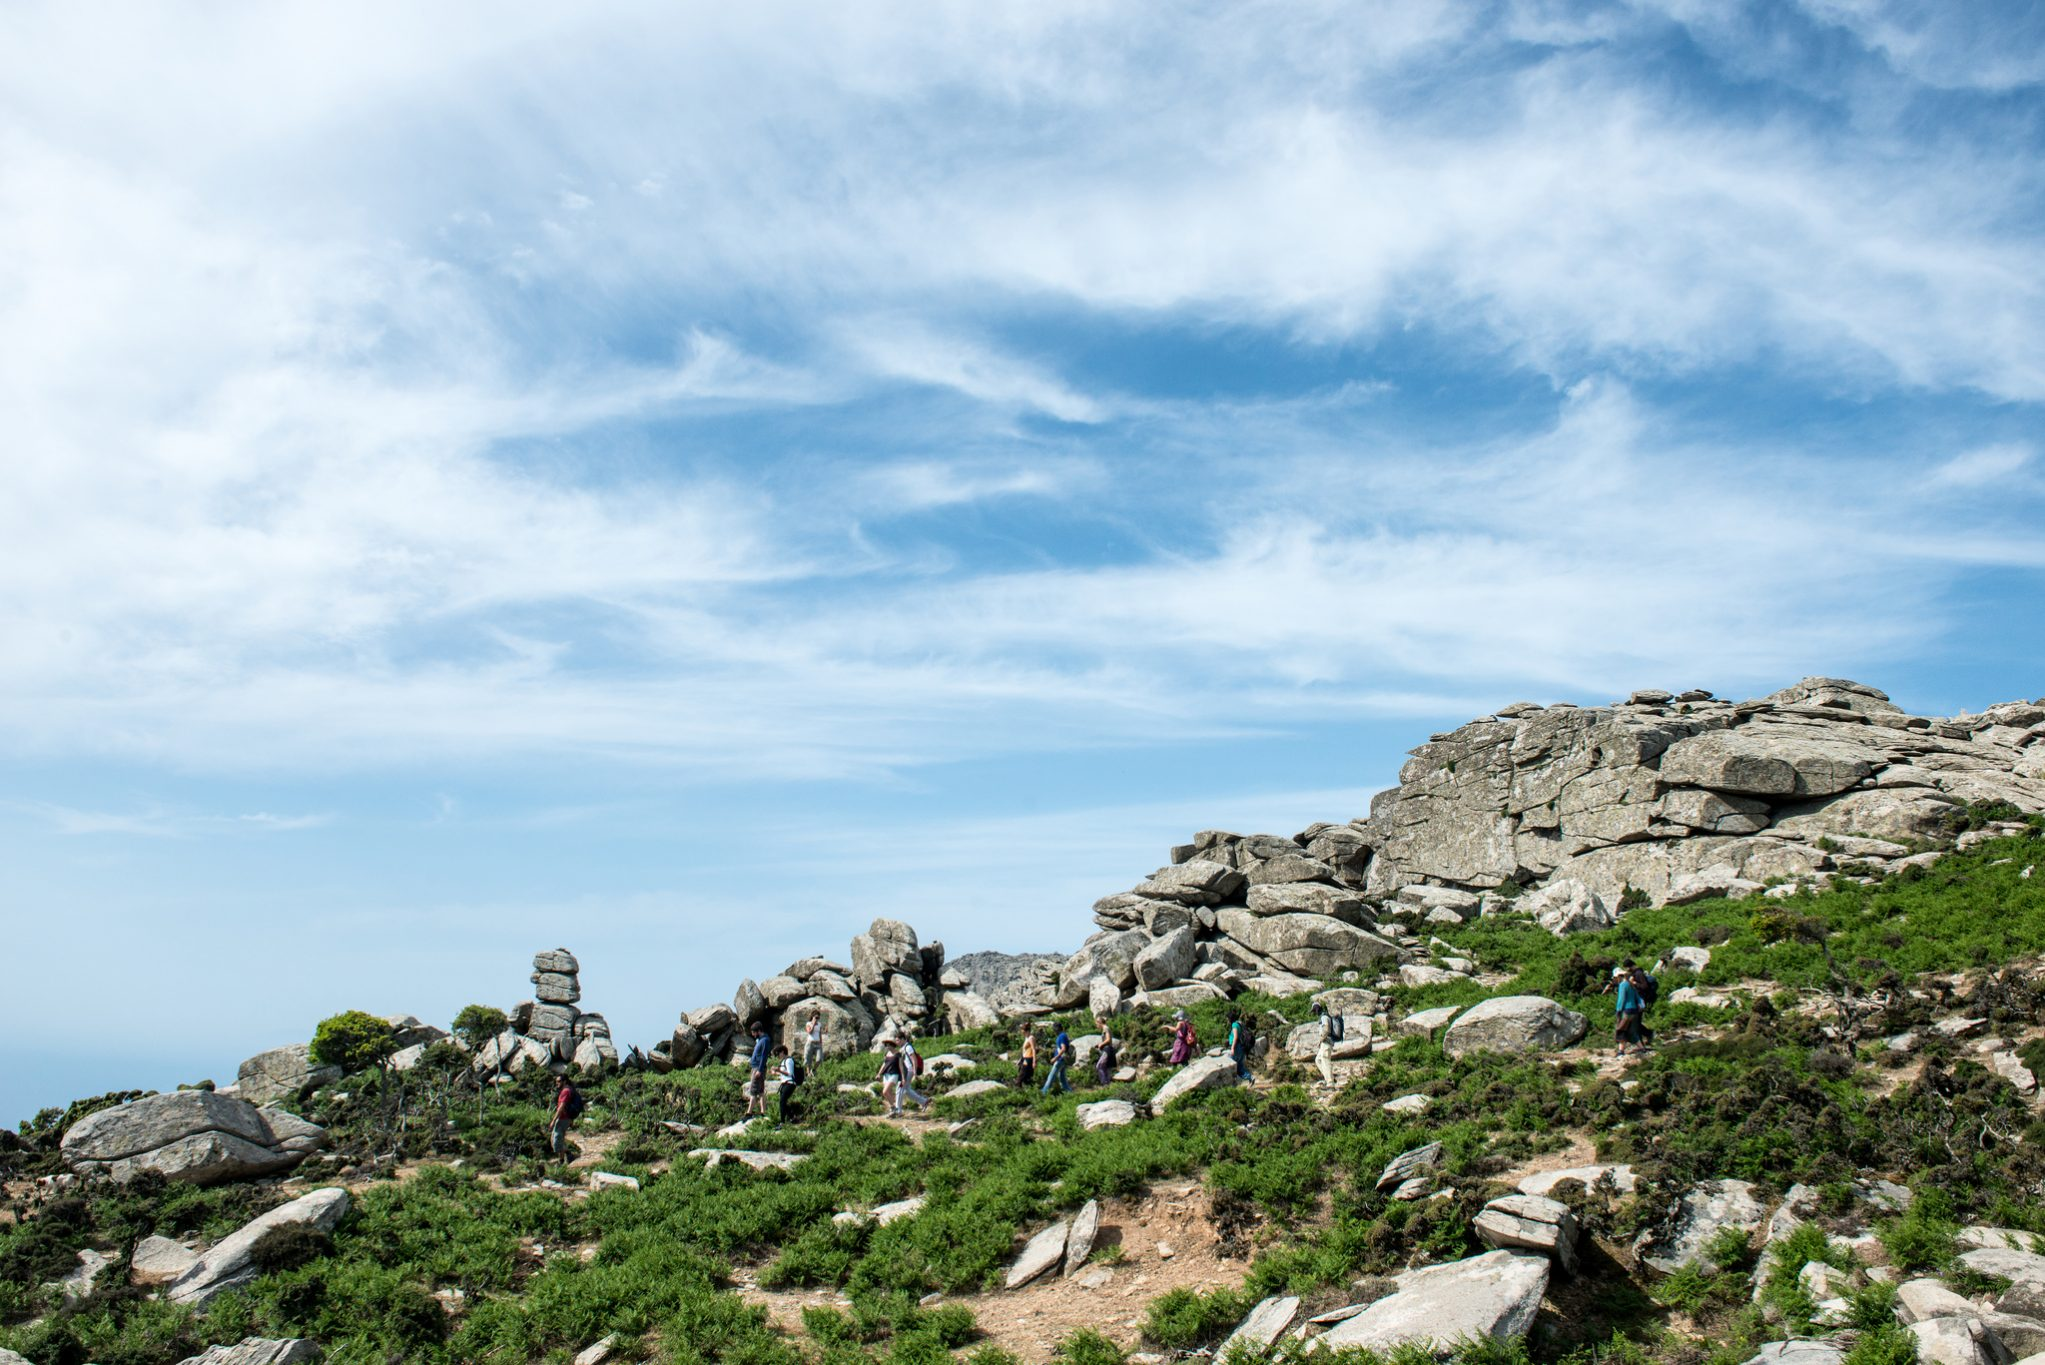 One day photography workshops on the island of Ikaria